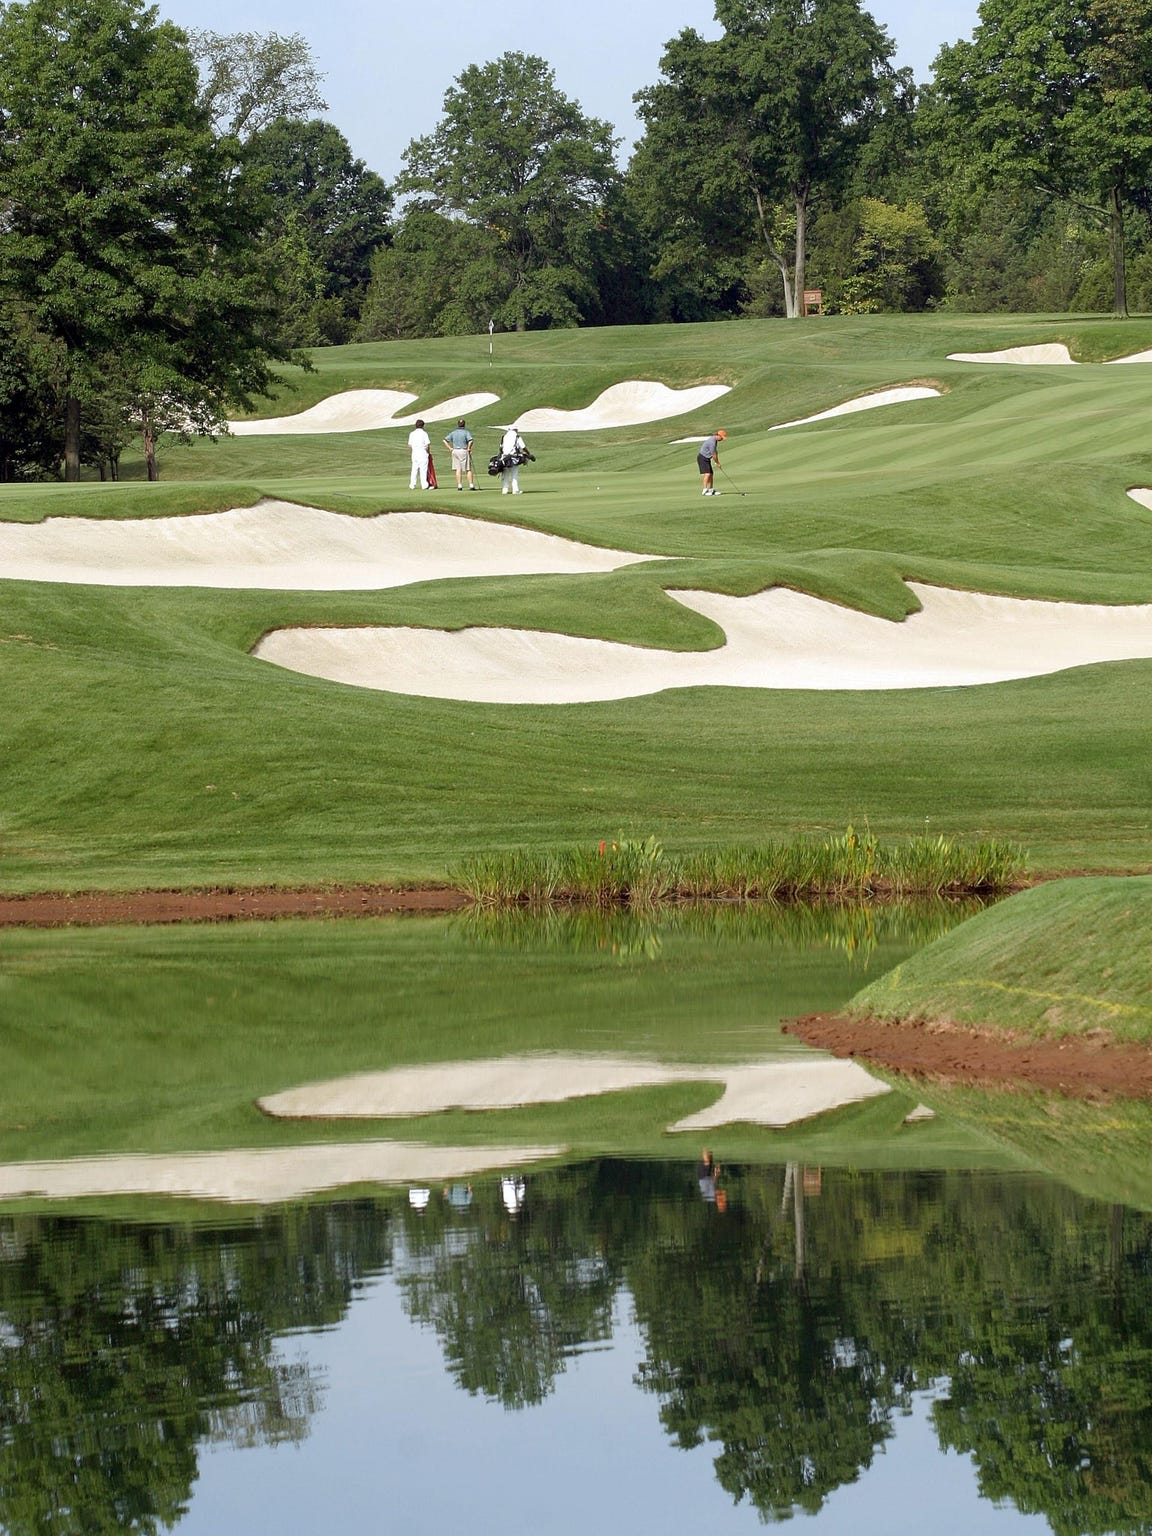 Golfers hit from one of the fairways at Trump National